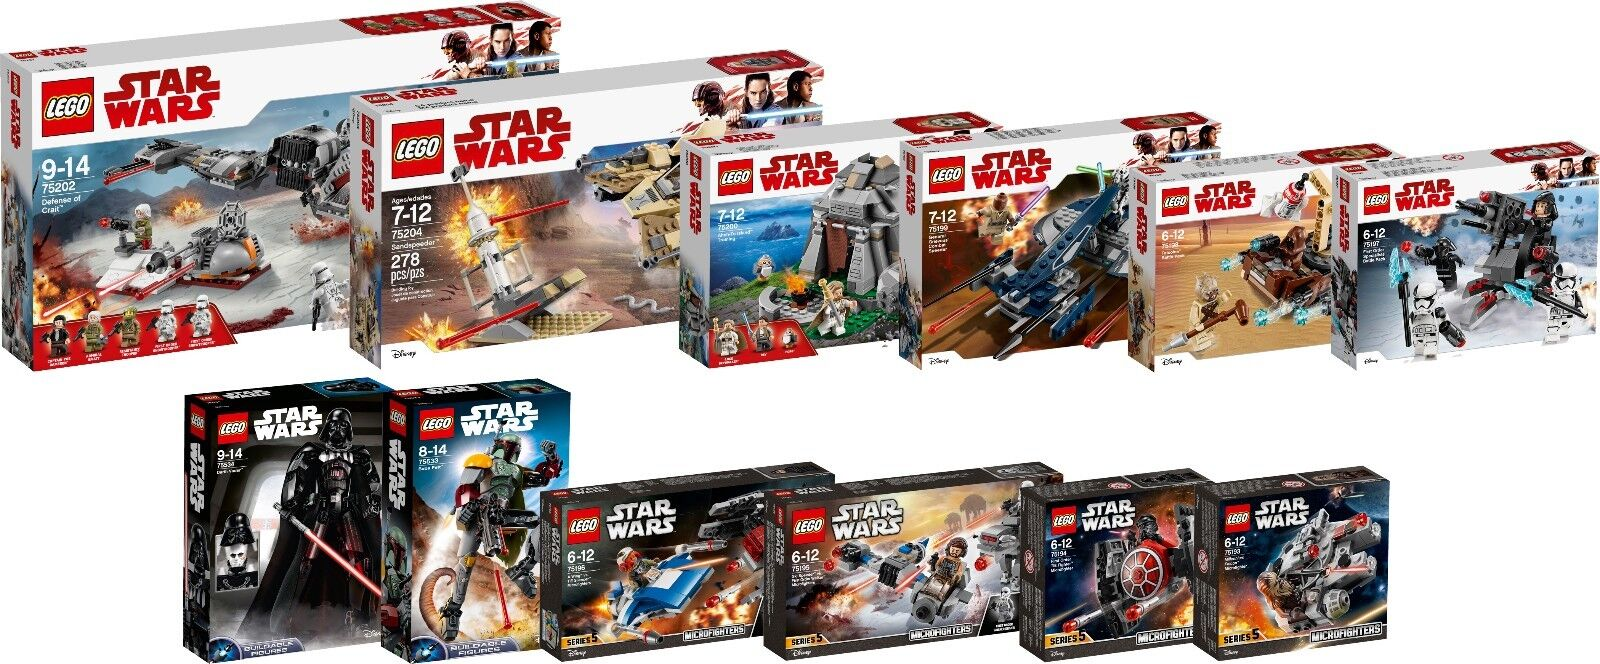 LEGO STAR WARS NEW 2018 2018 2018 Collection 75202 75200 75204 75533 75534 12 Set N1 18 490046